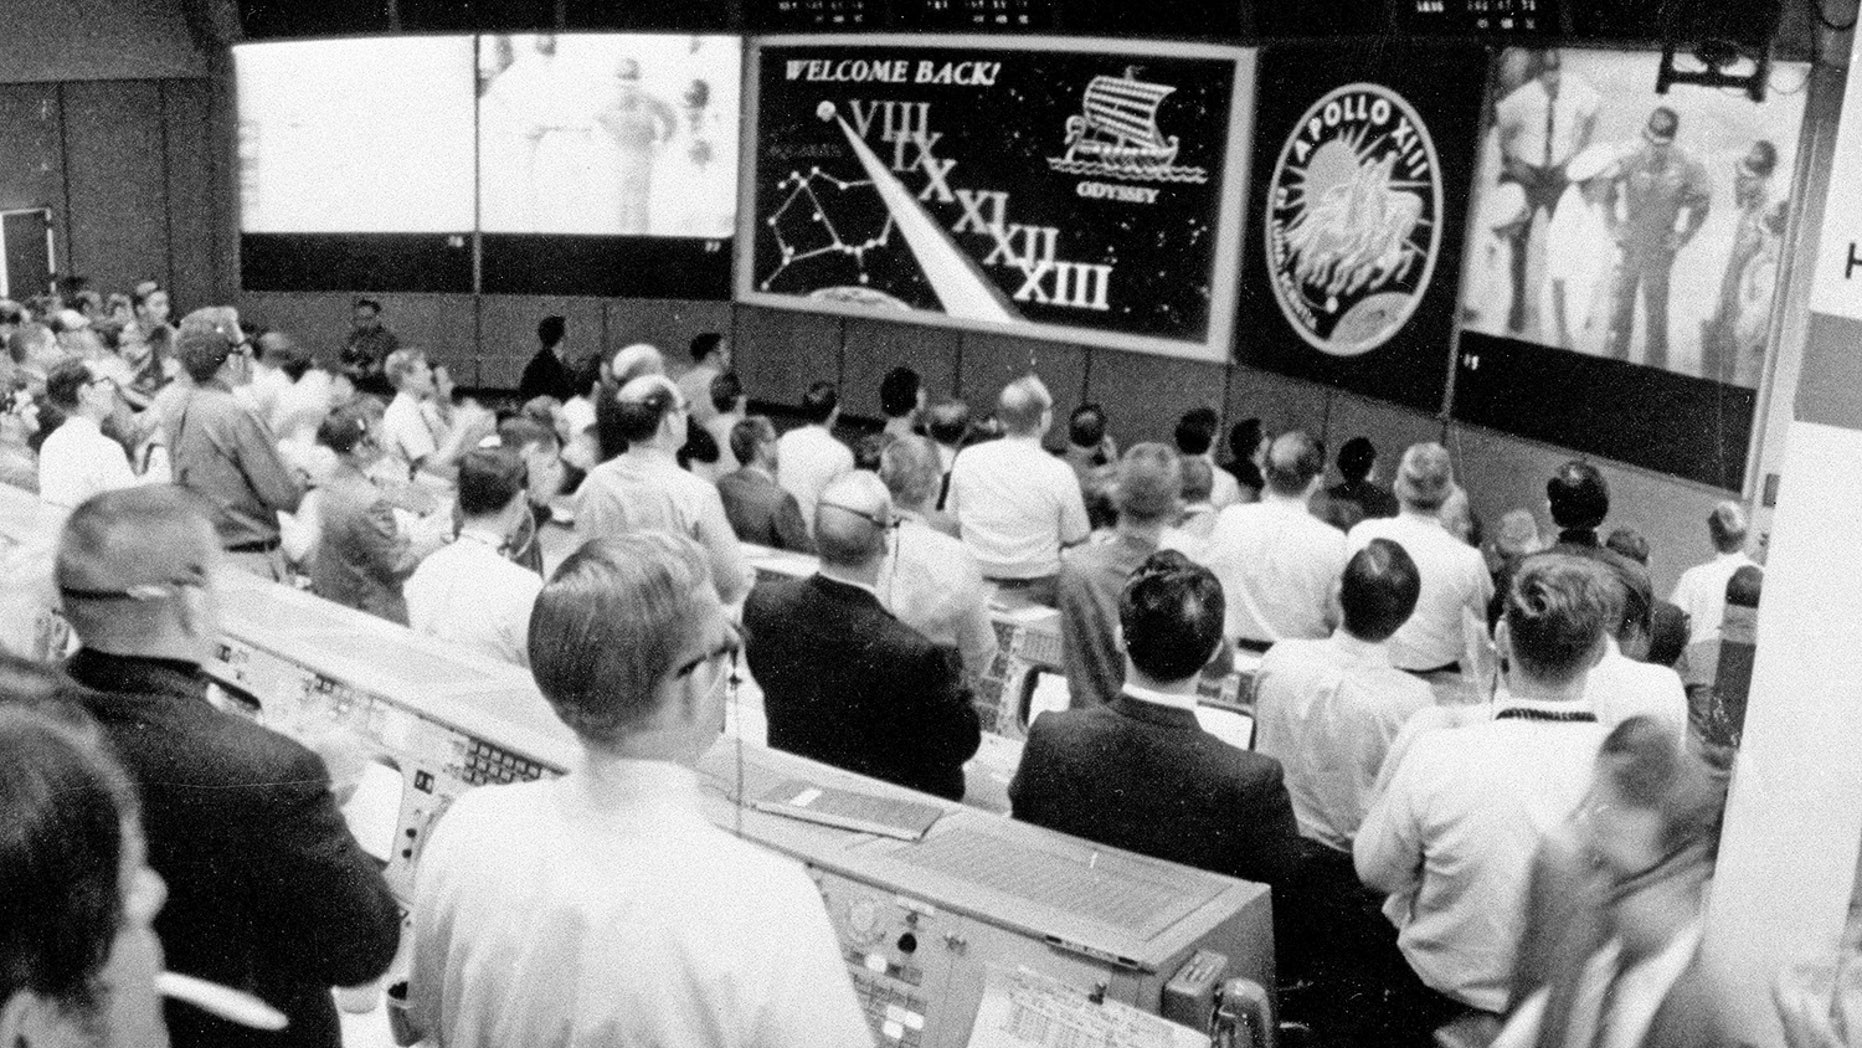 The view from NASA's Mission Operations Control Room as the Apollo 13 crew is welcomed aboard the USS Iwo Jima on April 17, 1970 following a perilous flight around the moon by astronauts James Lovell, Fred Haise and Jack Swigert.